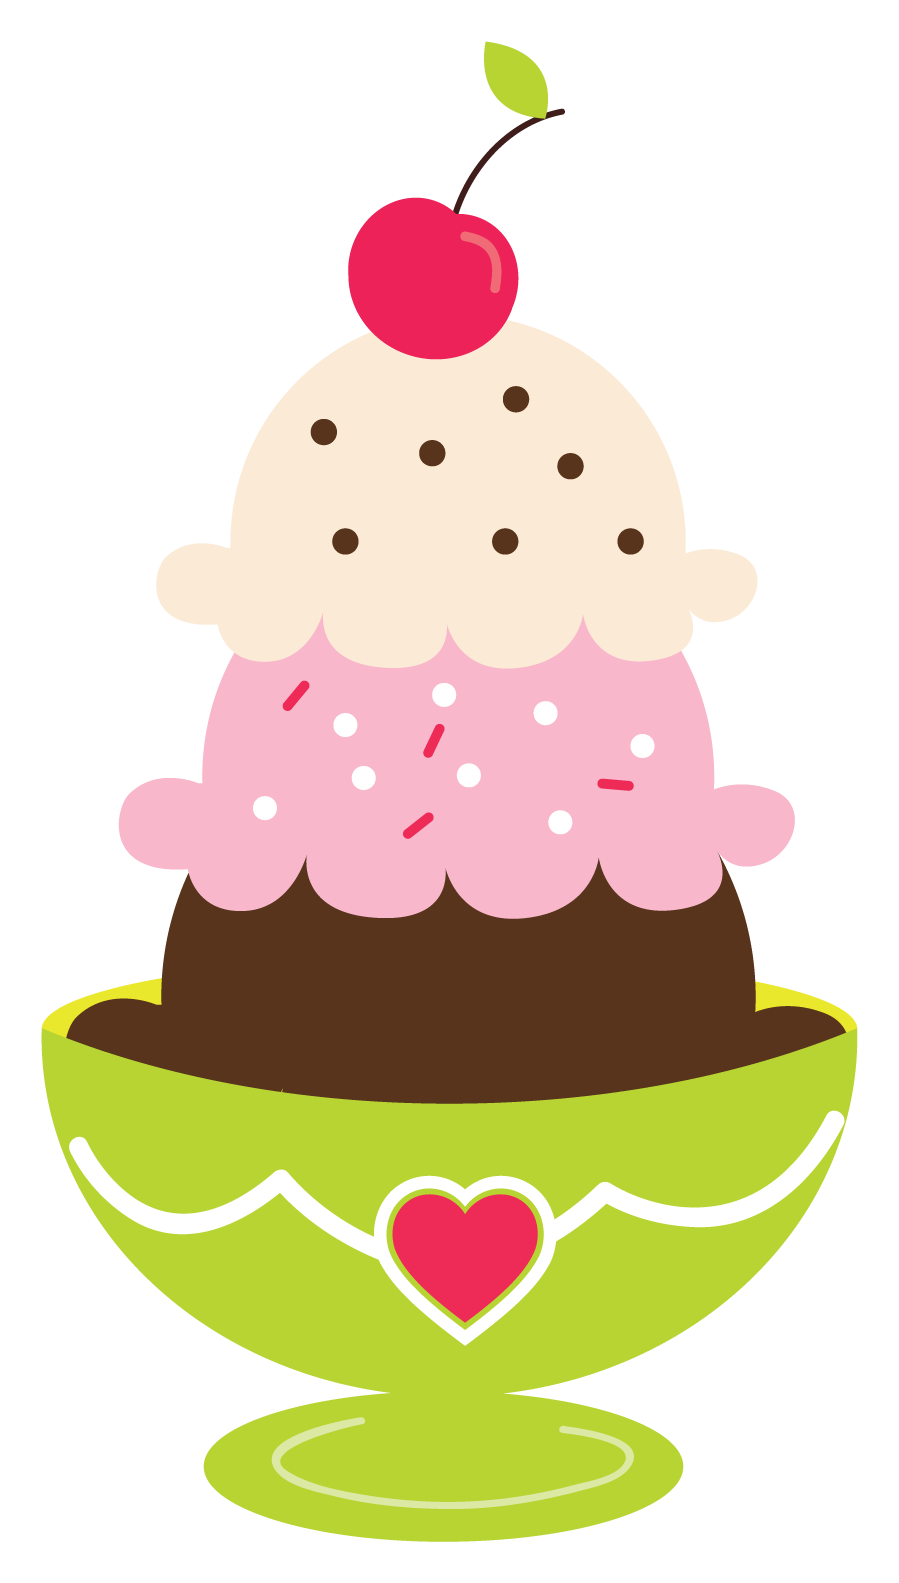 Best Ice Cream Social Clip Art #19724 - Clipartion.com